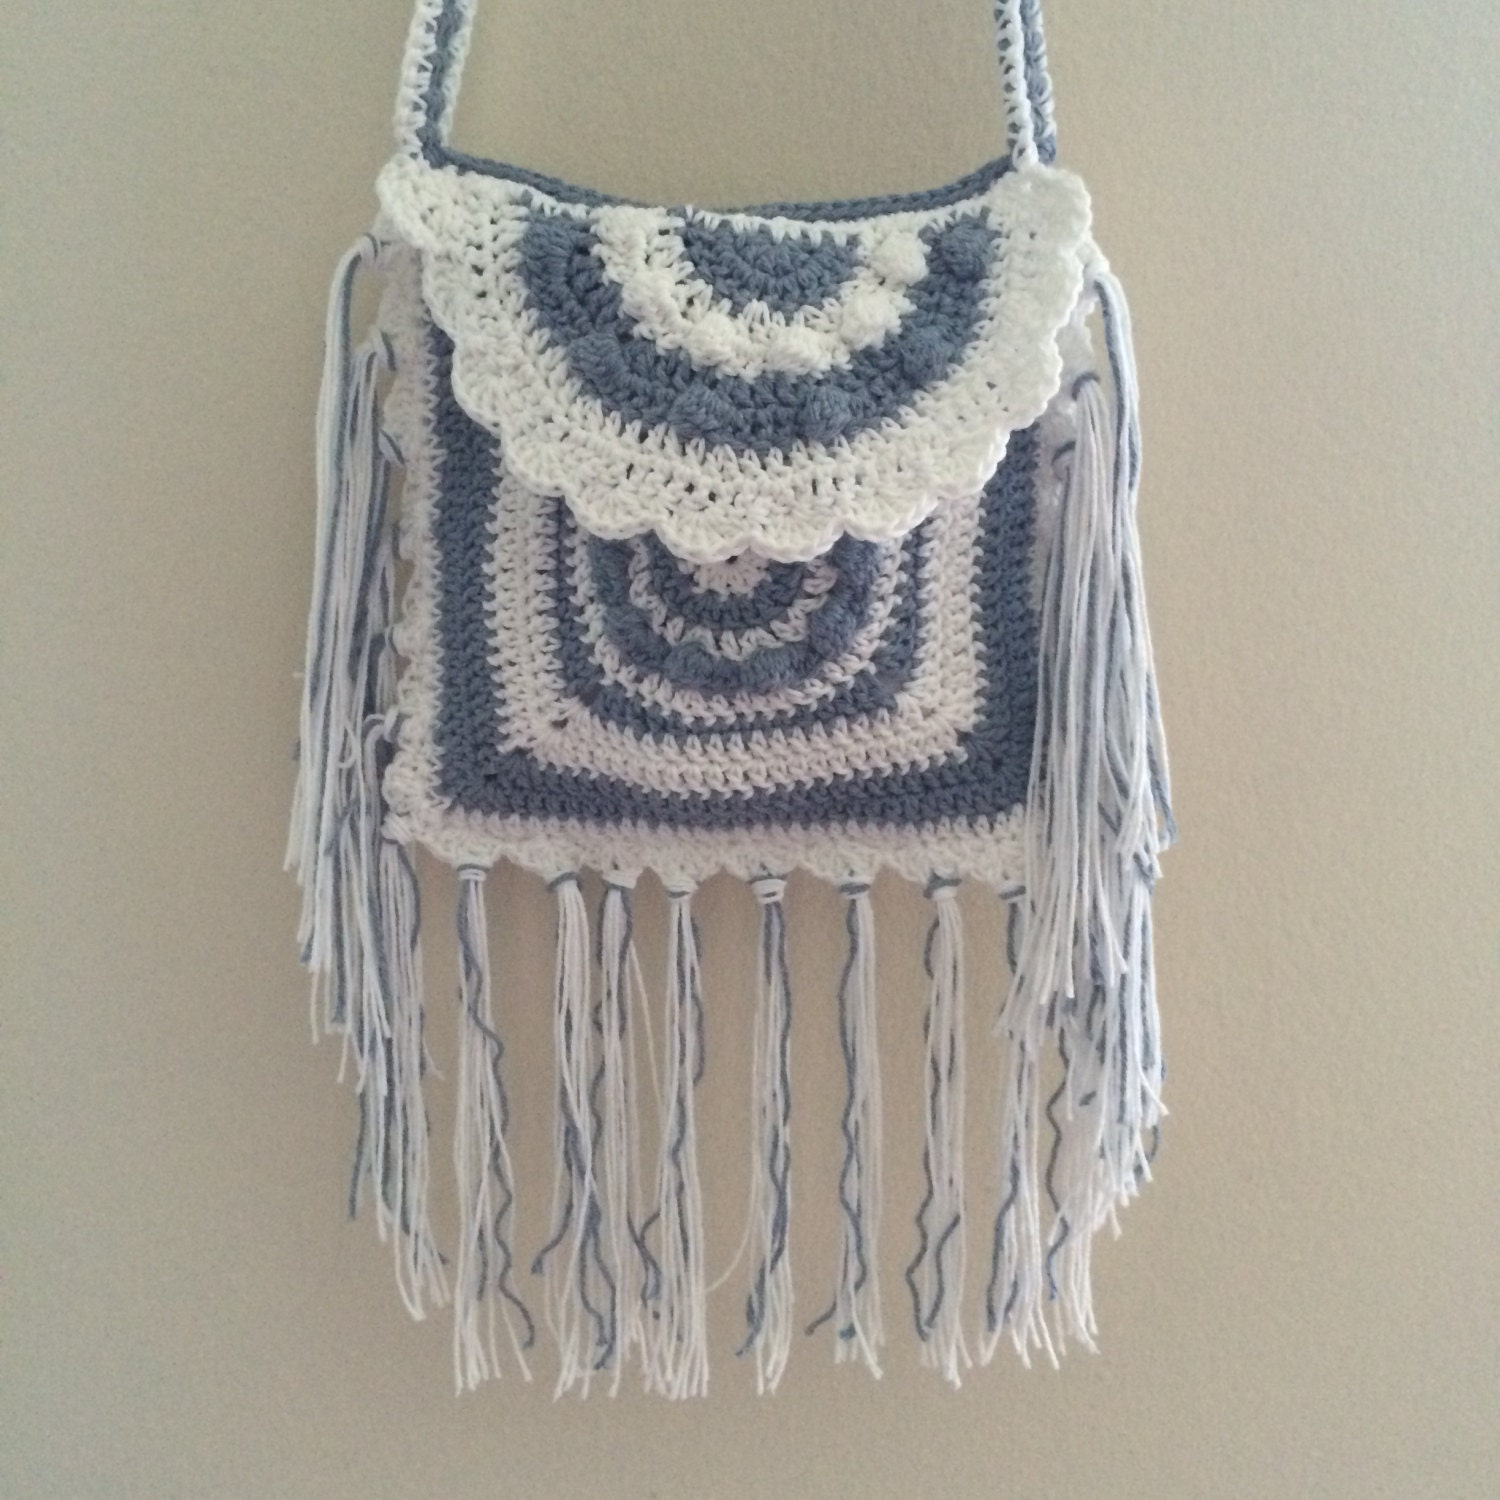 Crochet Fringe Bag : Crochet crossbody bag Fringe purse Boho bag Hippie tote by TemiM